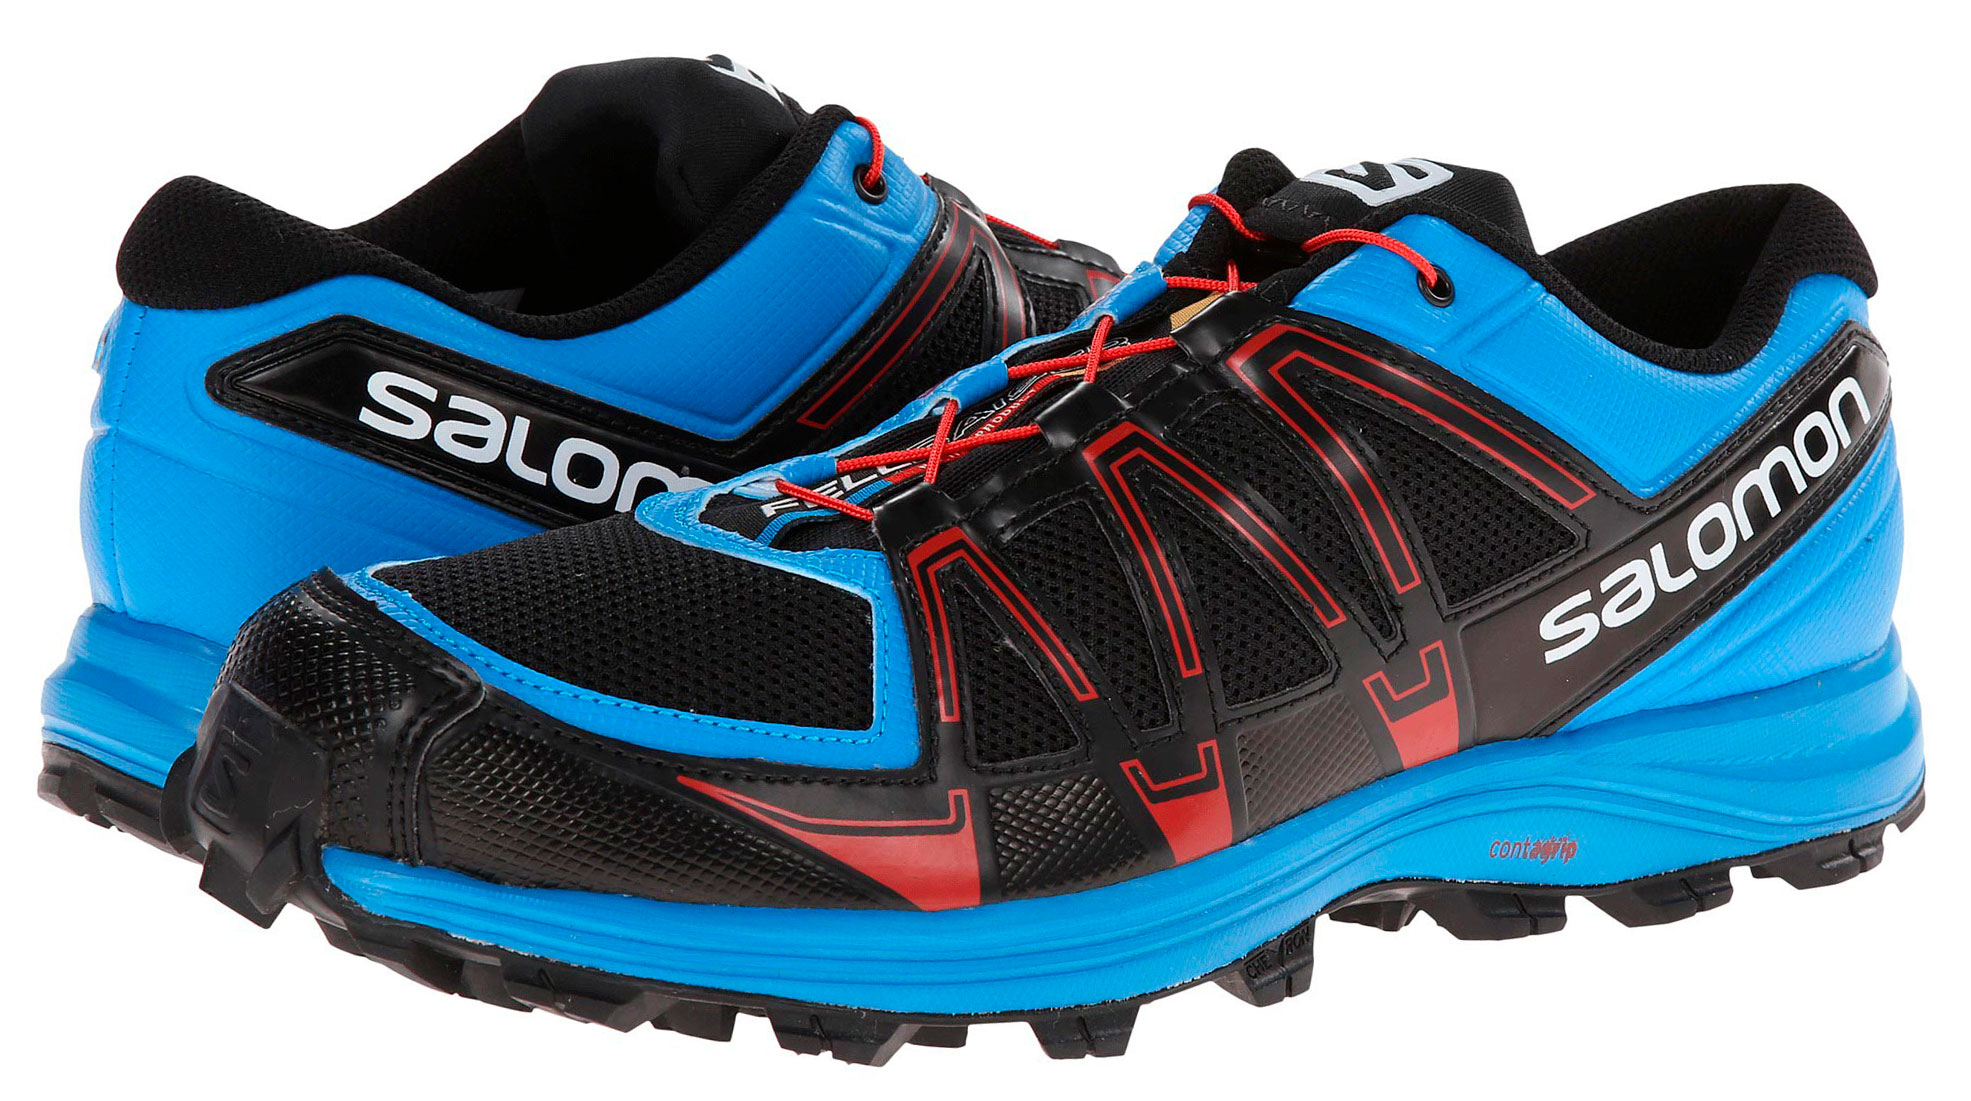 Zapatillas Salomon Fellraiser Negro/Azul/Rojo